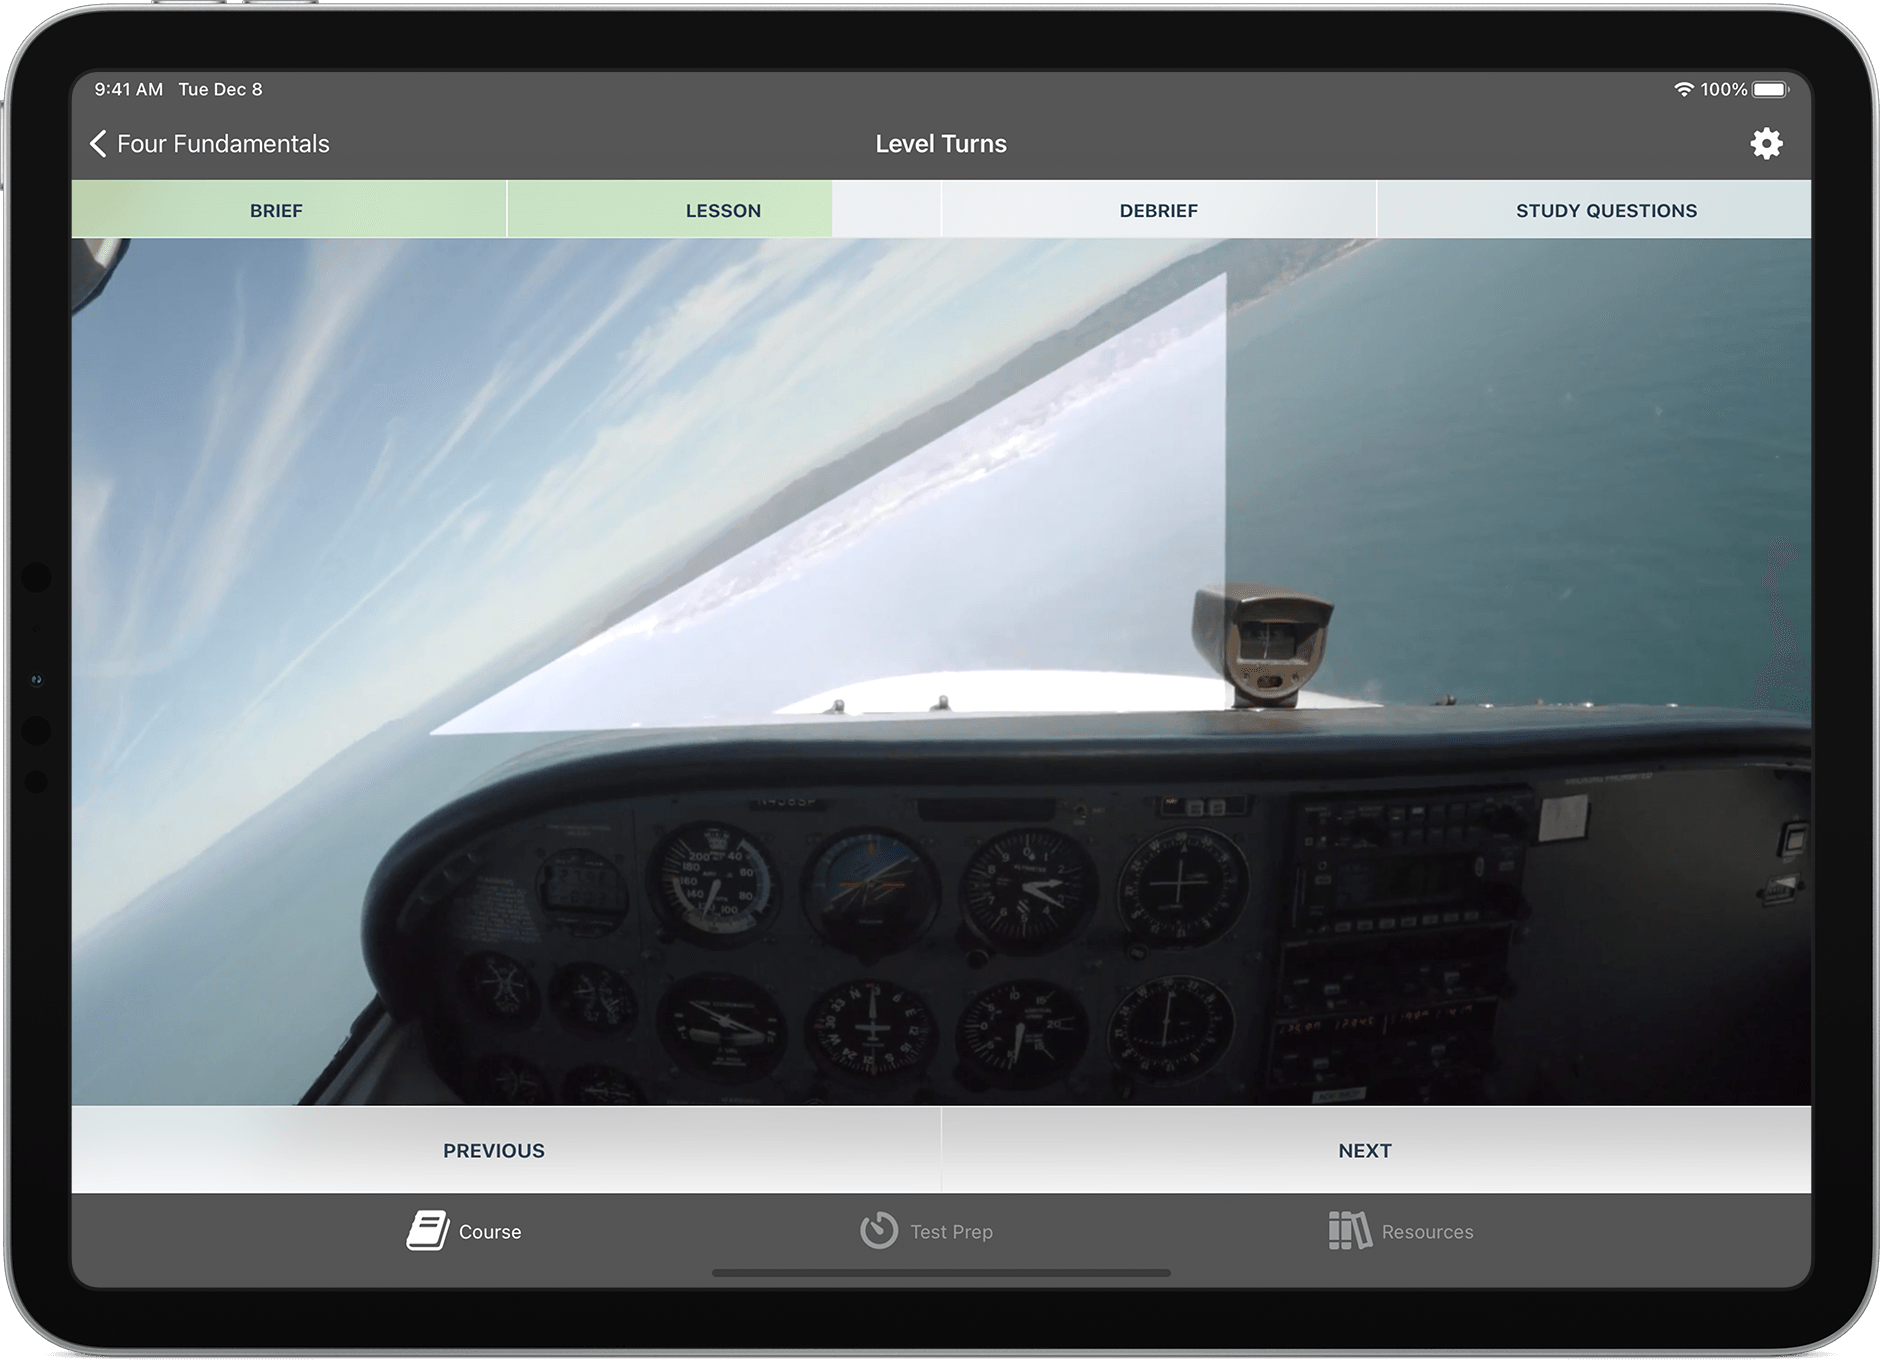 Ground School app lesson video showing in-cockpit pilot's eye view over instrument panel